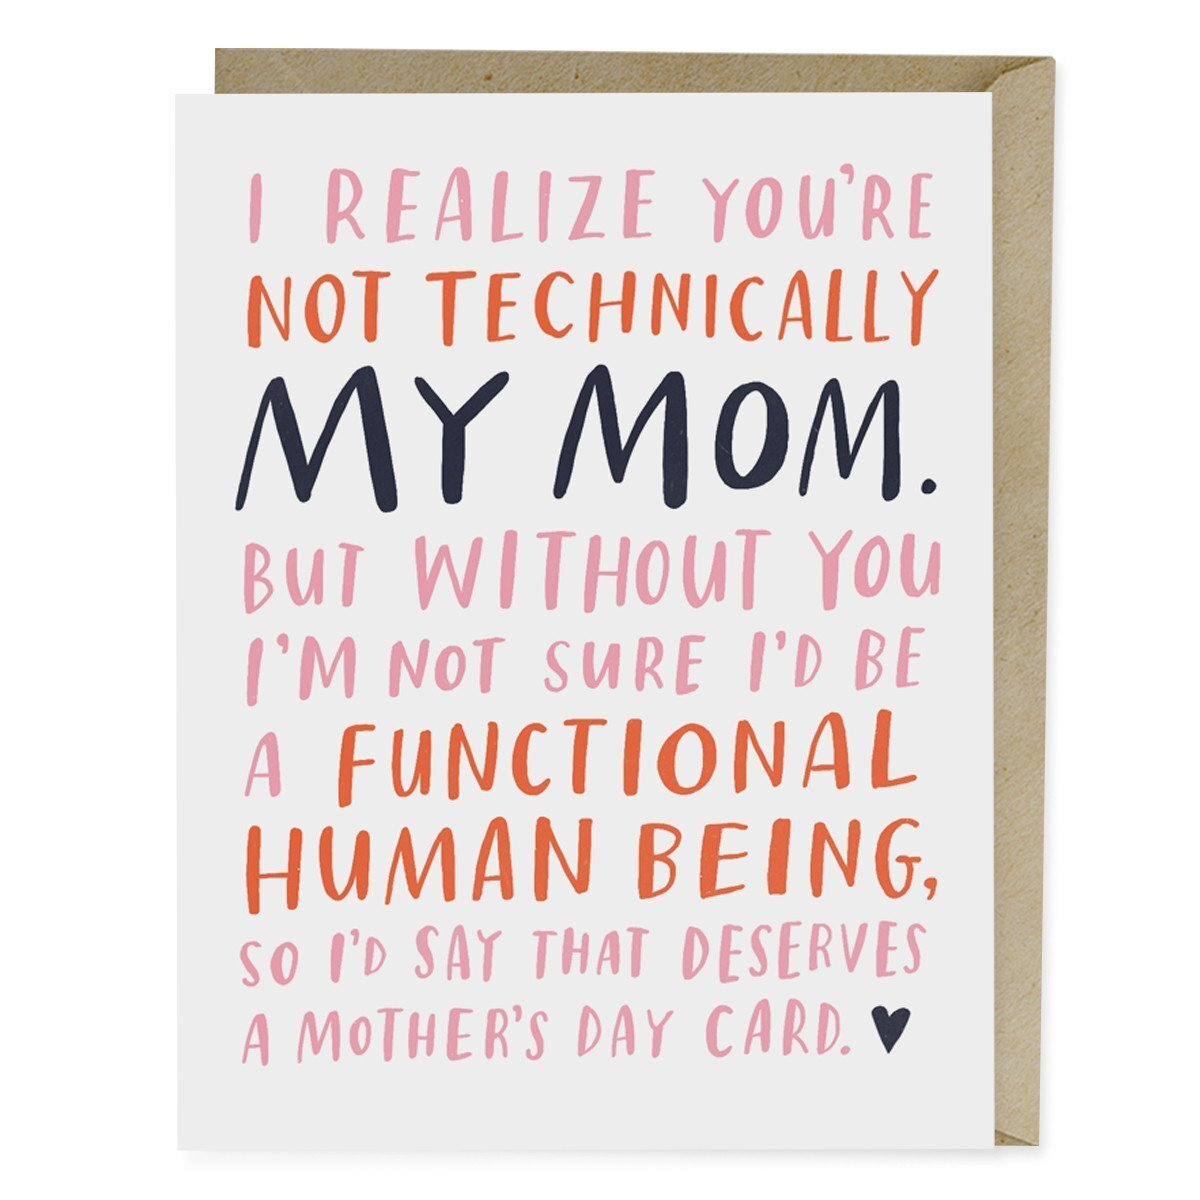 mother's day card says i realize you're not my mom but without you I sure wouldn't be a functioning human being so i think that deserves a mother's day card